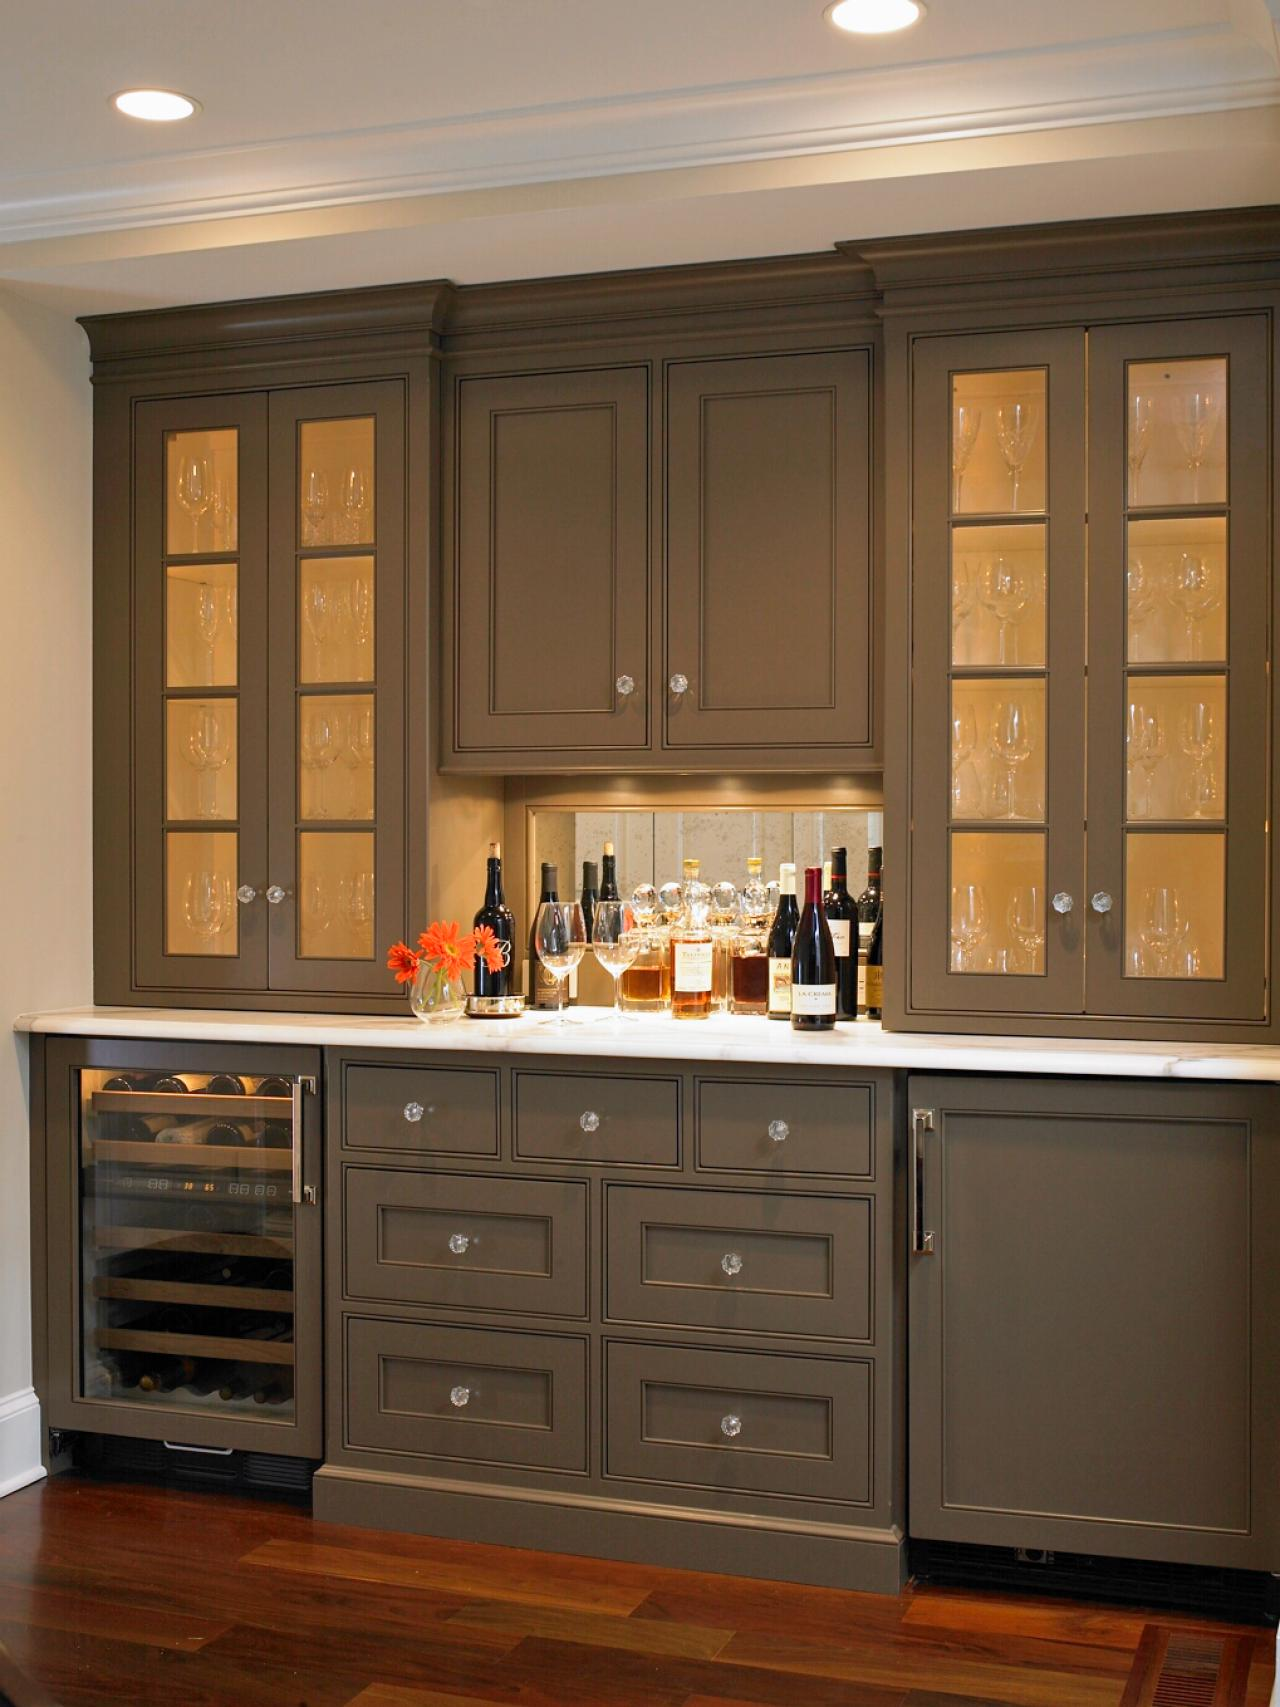 Ideas for painting kitchen cabinets pictures from hgtv for Painting kitchen cabinets